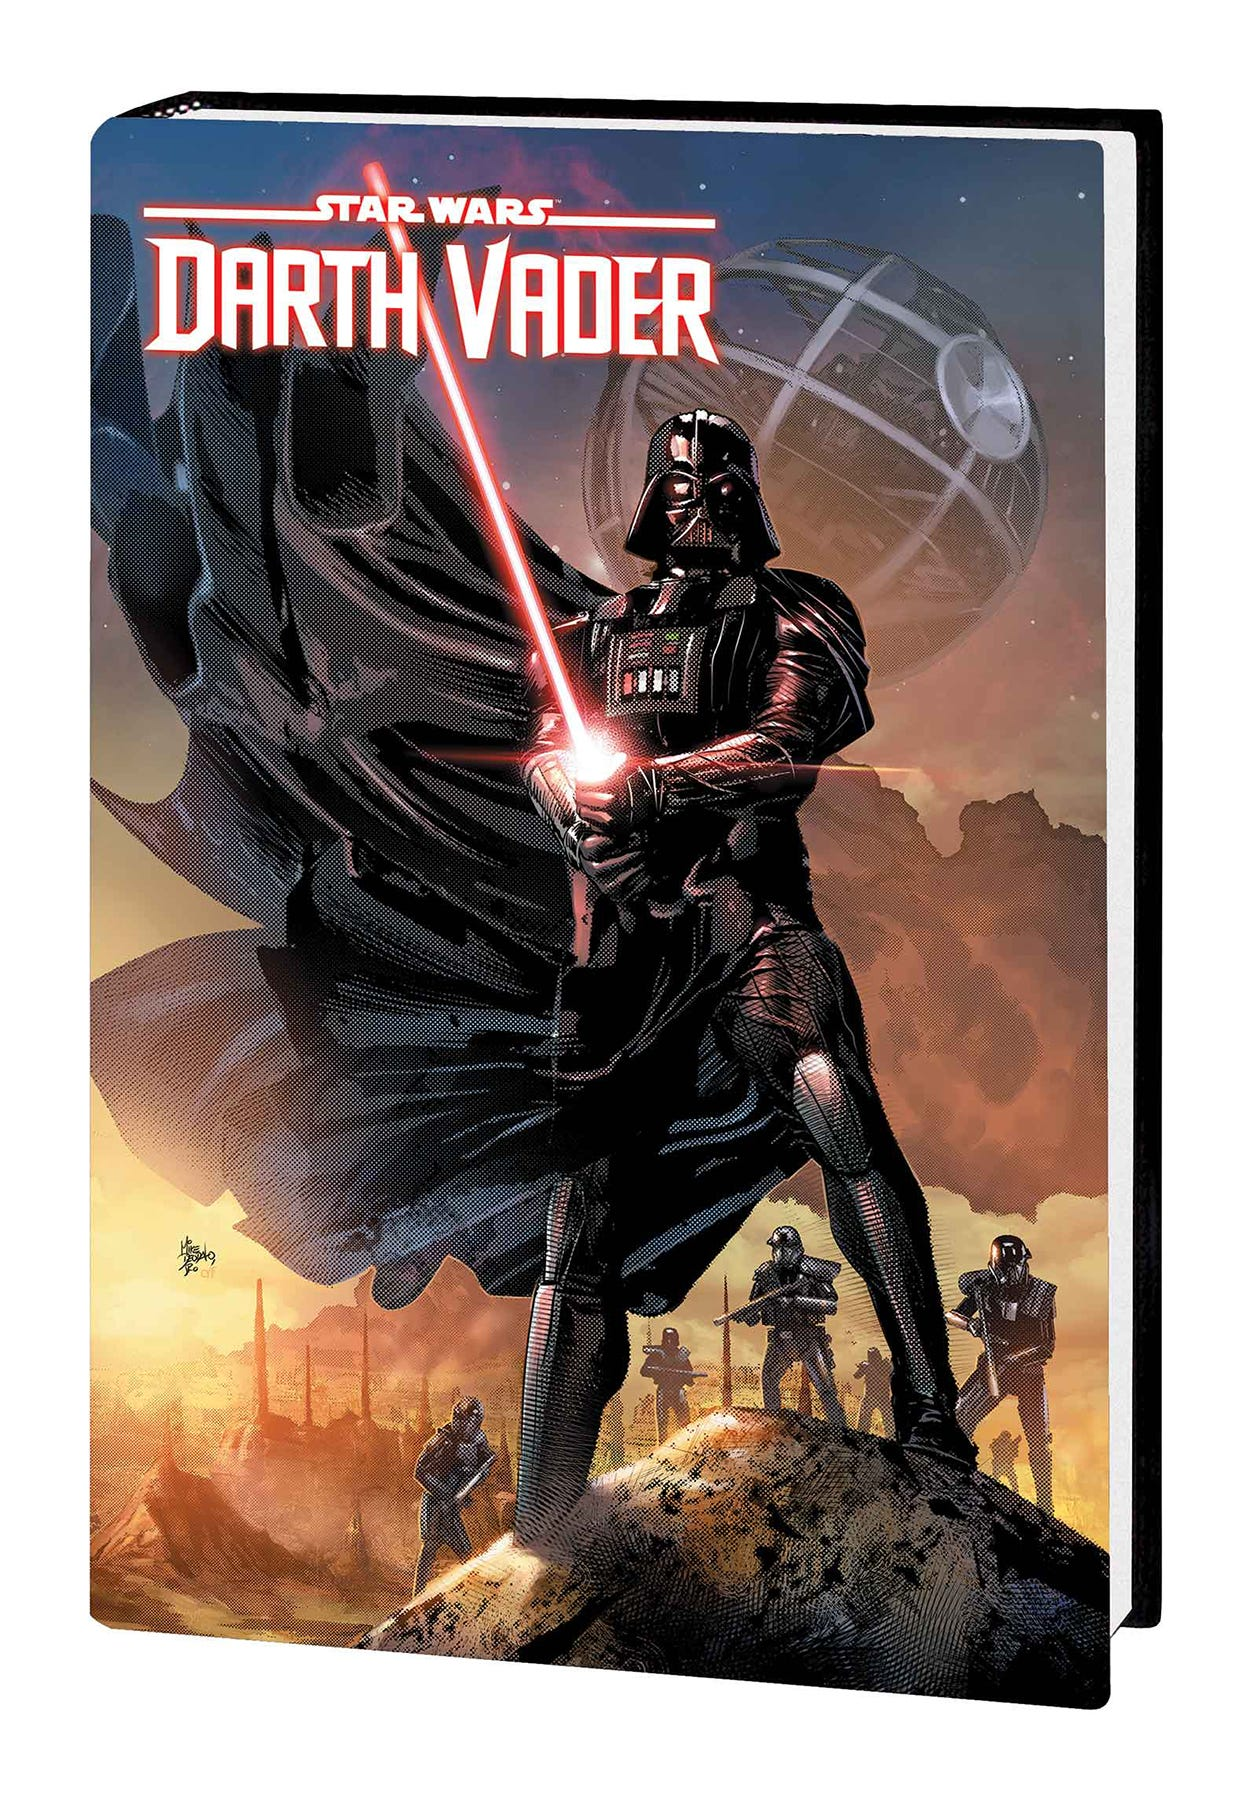 Star Wars Darth Vader by Soule Omnibus HC (Deodato Cover)